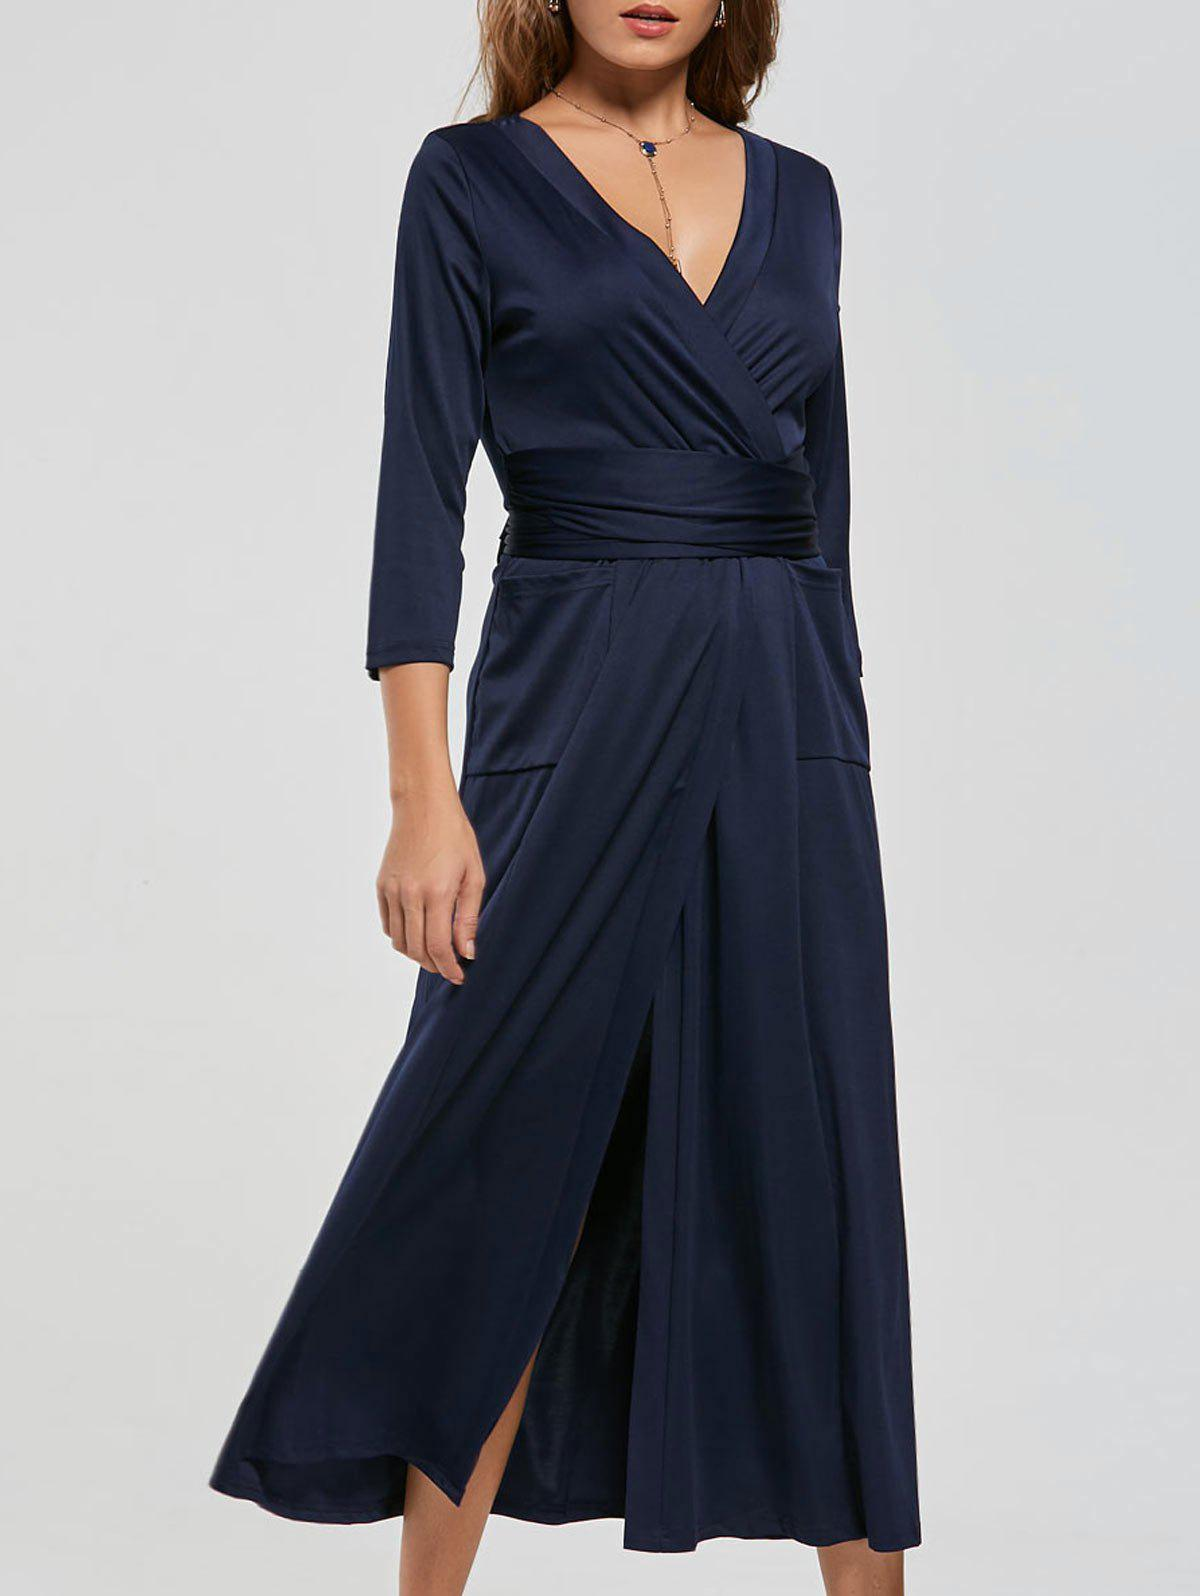 V Neck Pockets High Slit Midi Surplice Dress - PURPLISH BLUE 2XL